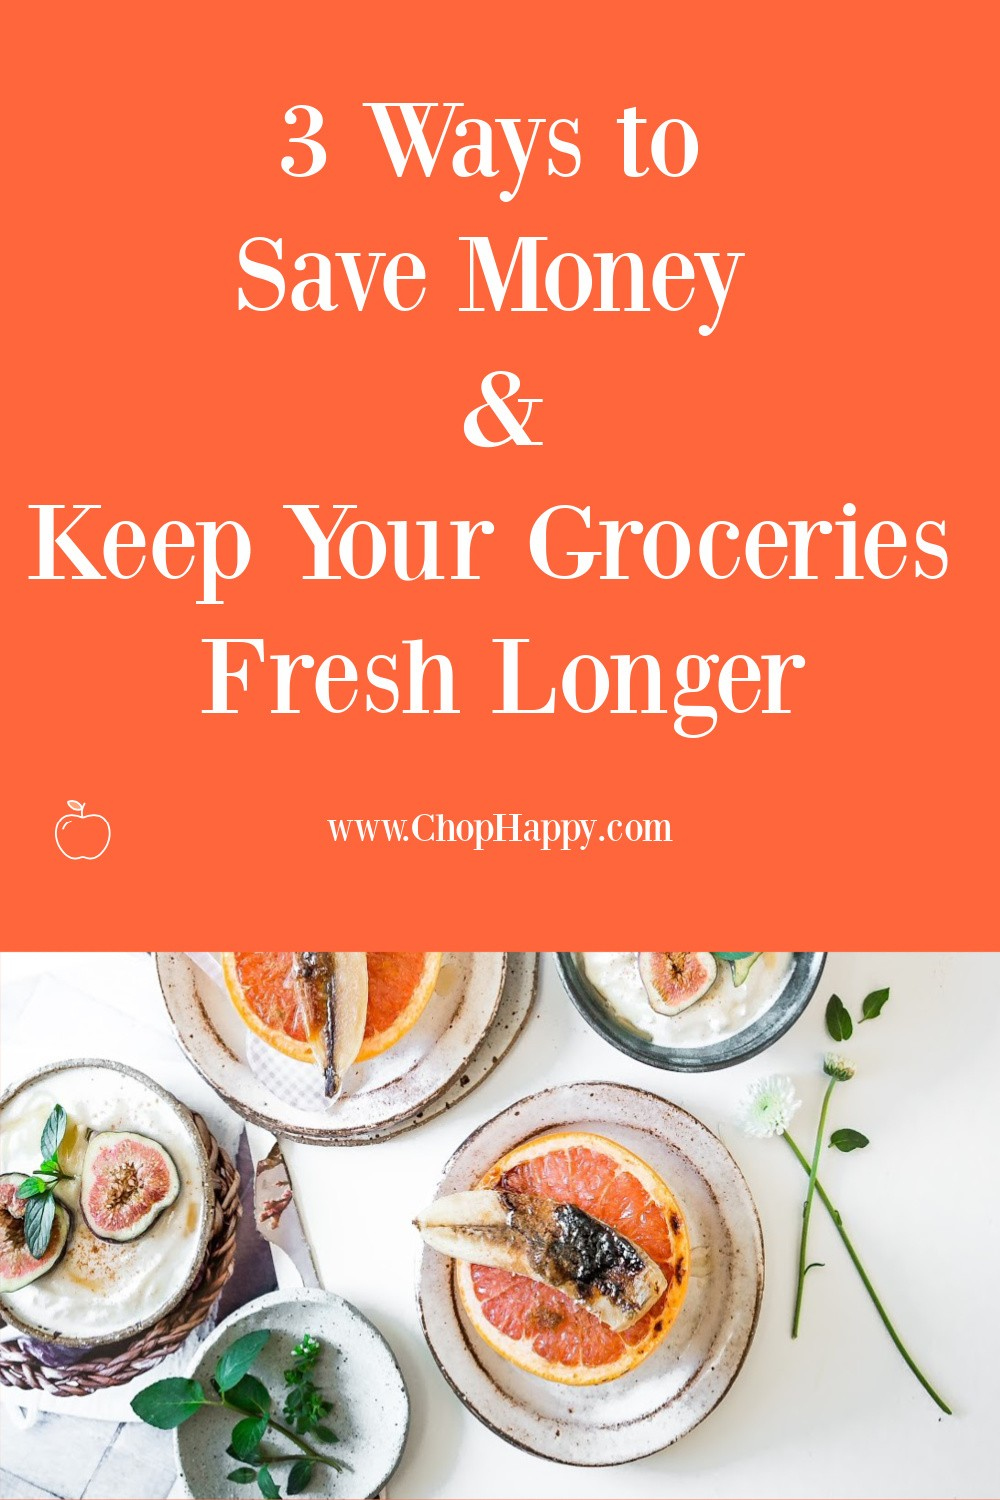 3 Ways to Save Money and Keep Your Groceries Fresh Longer. Here is 3 easy tools from Amazon that will make your veggies and meats last longer. www.ChopHappy.com #savemoney #veggies